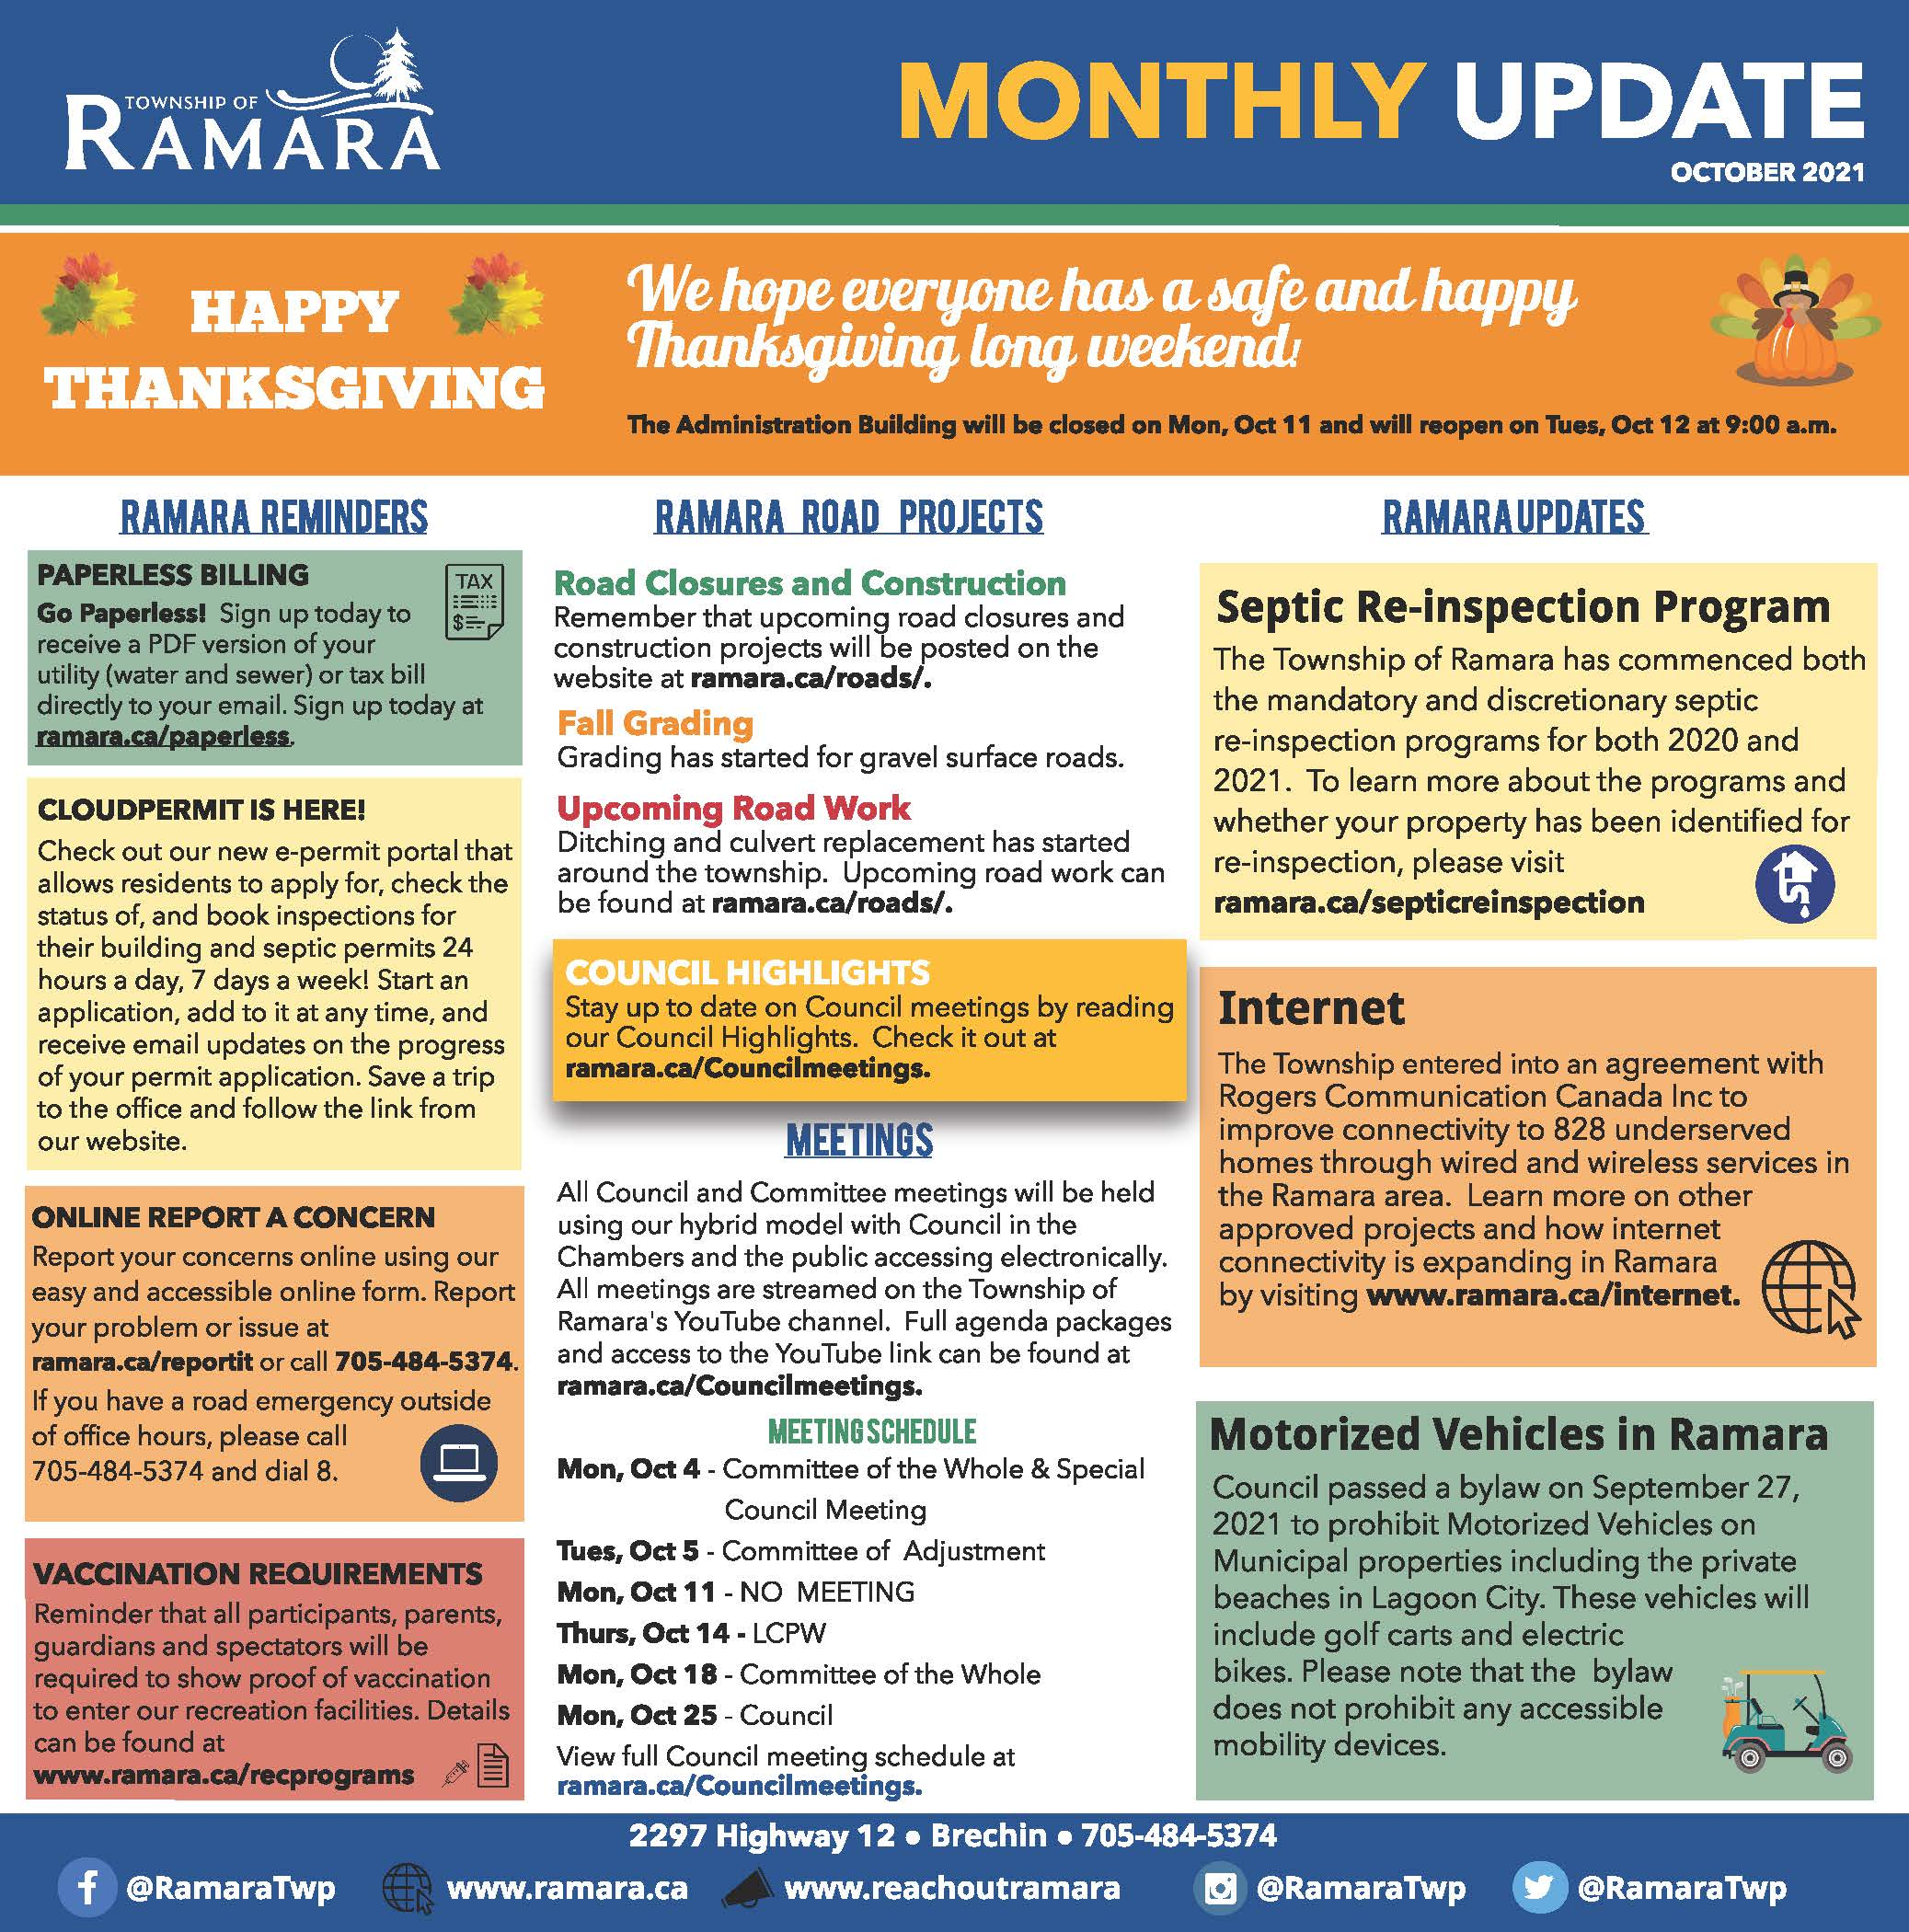 October edition of the Ramara Bulletin that lists all the news and important updates for Ramara Township.